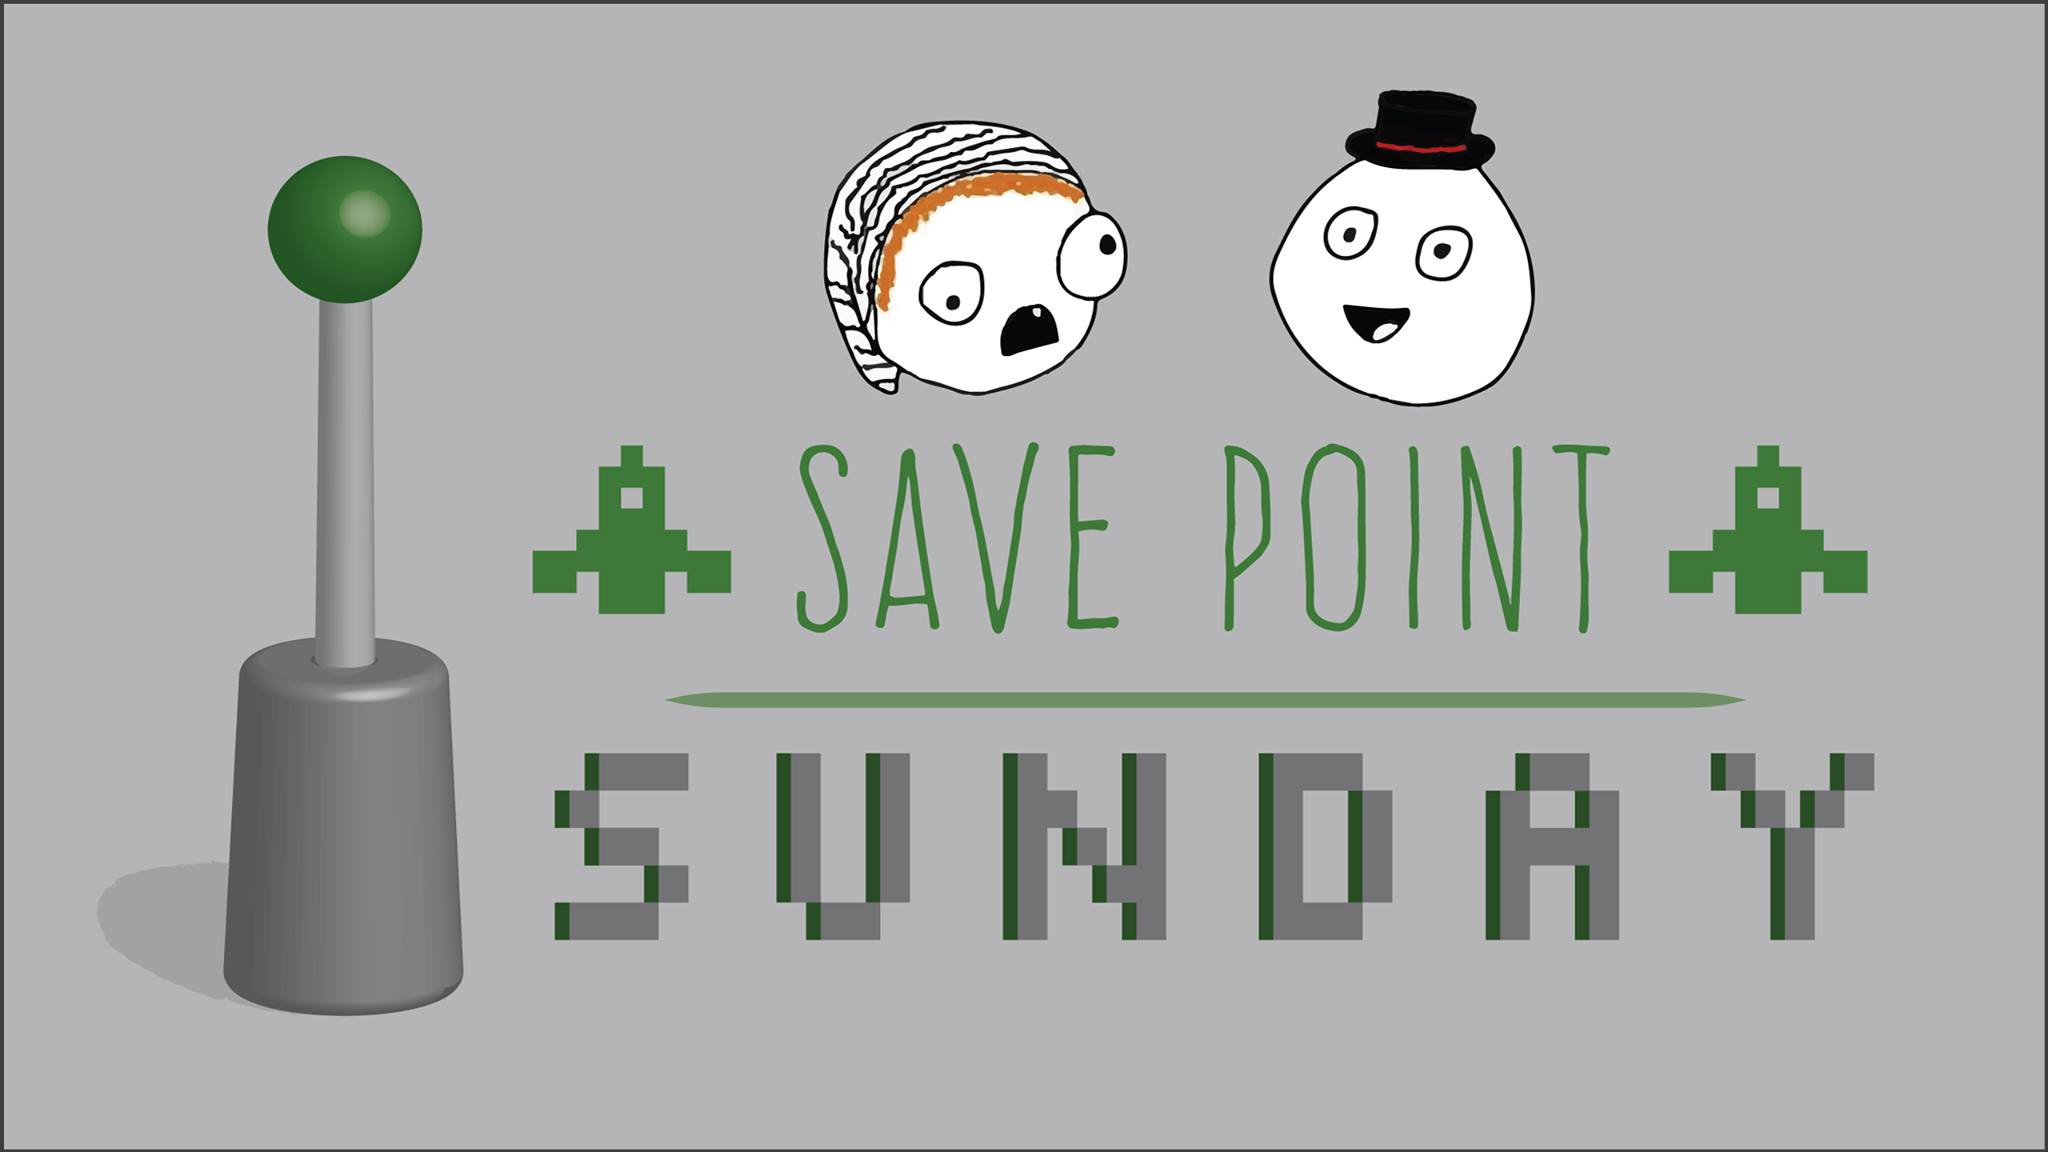 - Save Point Sunday is a general banter comedy podcast featuring three regular hosts: StarF, Colton, & Staples! Occasionally joined by others but always mired in nonsense, the podcast that once started as a simple idea to recap the week has grown into a 100+ episode monstrosity. Join us on a weekly adventure through whatever we may feel like discussing! From current events to media reviews to all the dick jokes you can handle, we've got a little something for everyone. Save Point Sunday: It's like drinking a wicker chair.